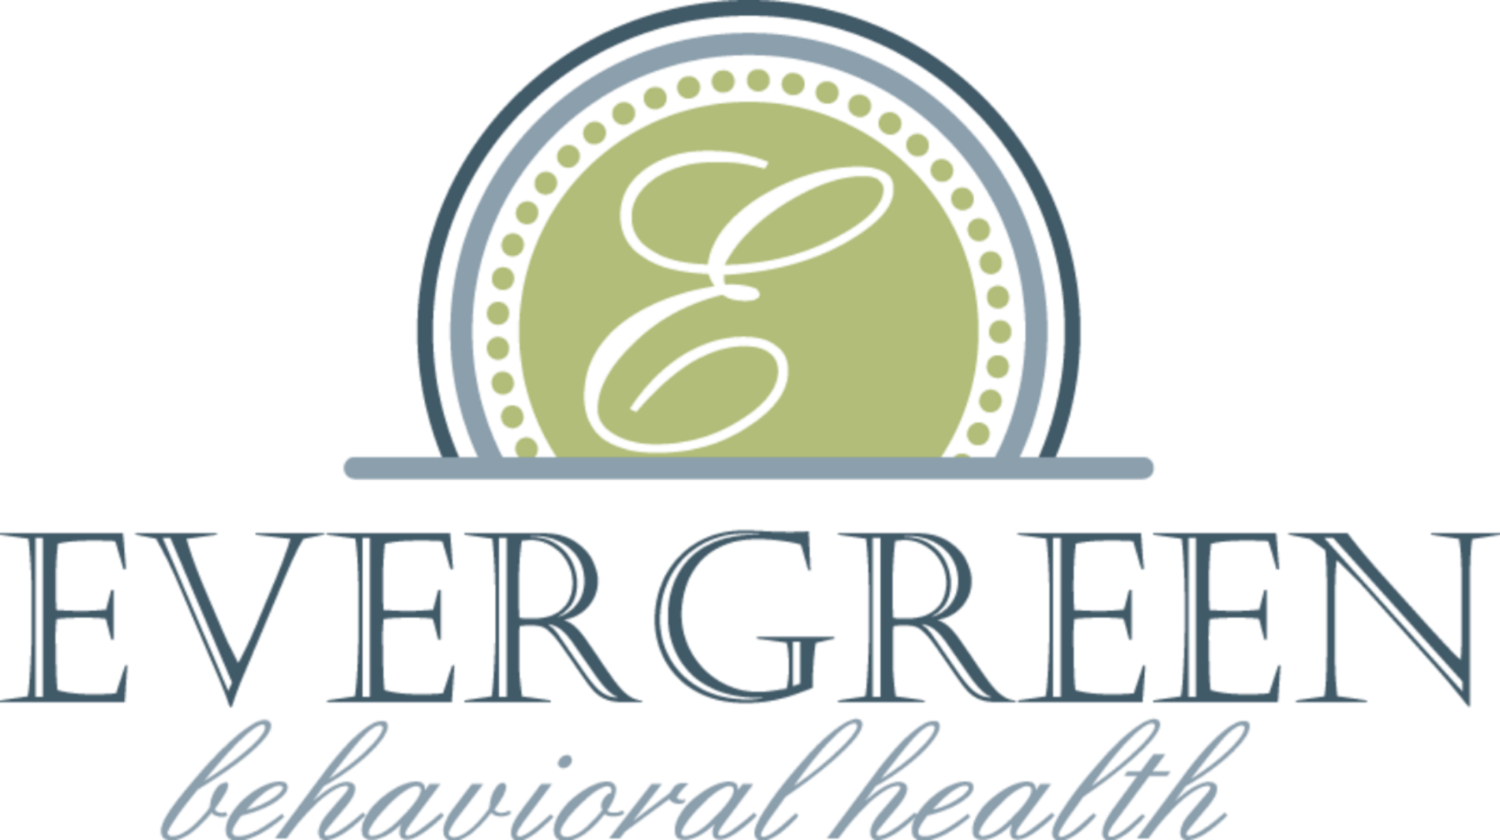 Evergreen Behavioral Health